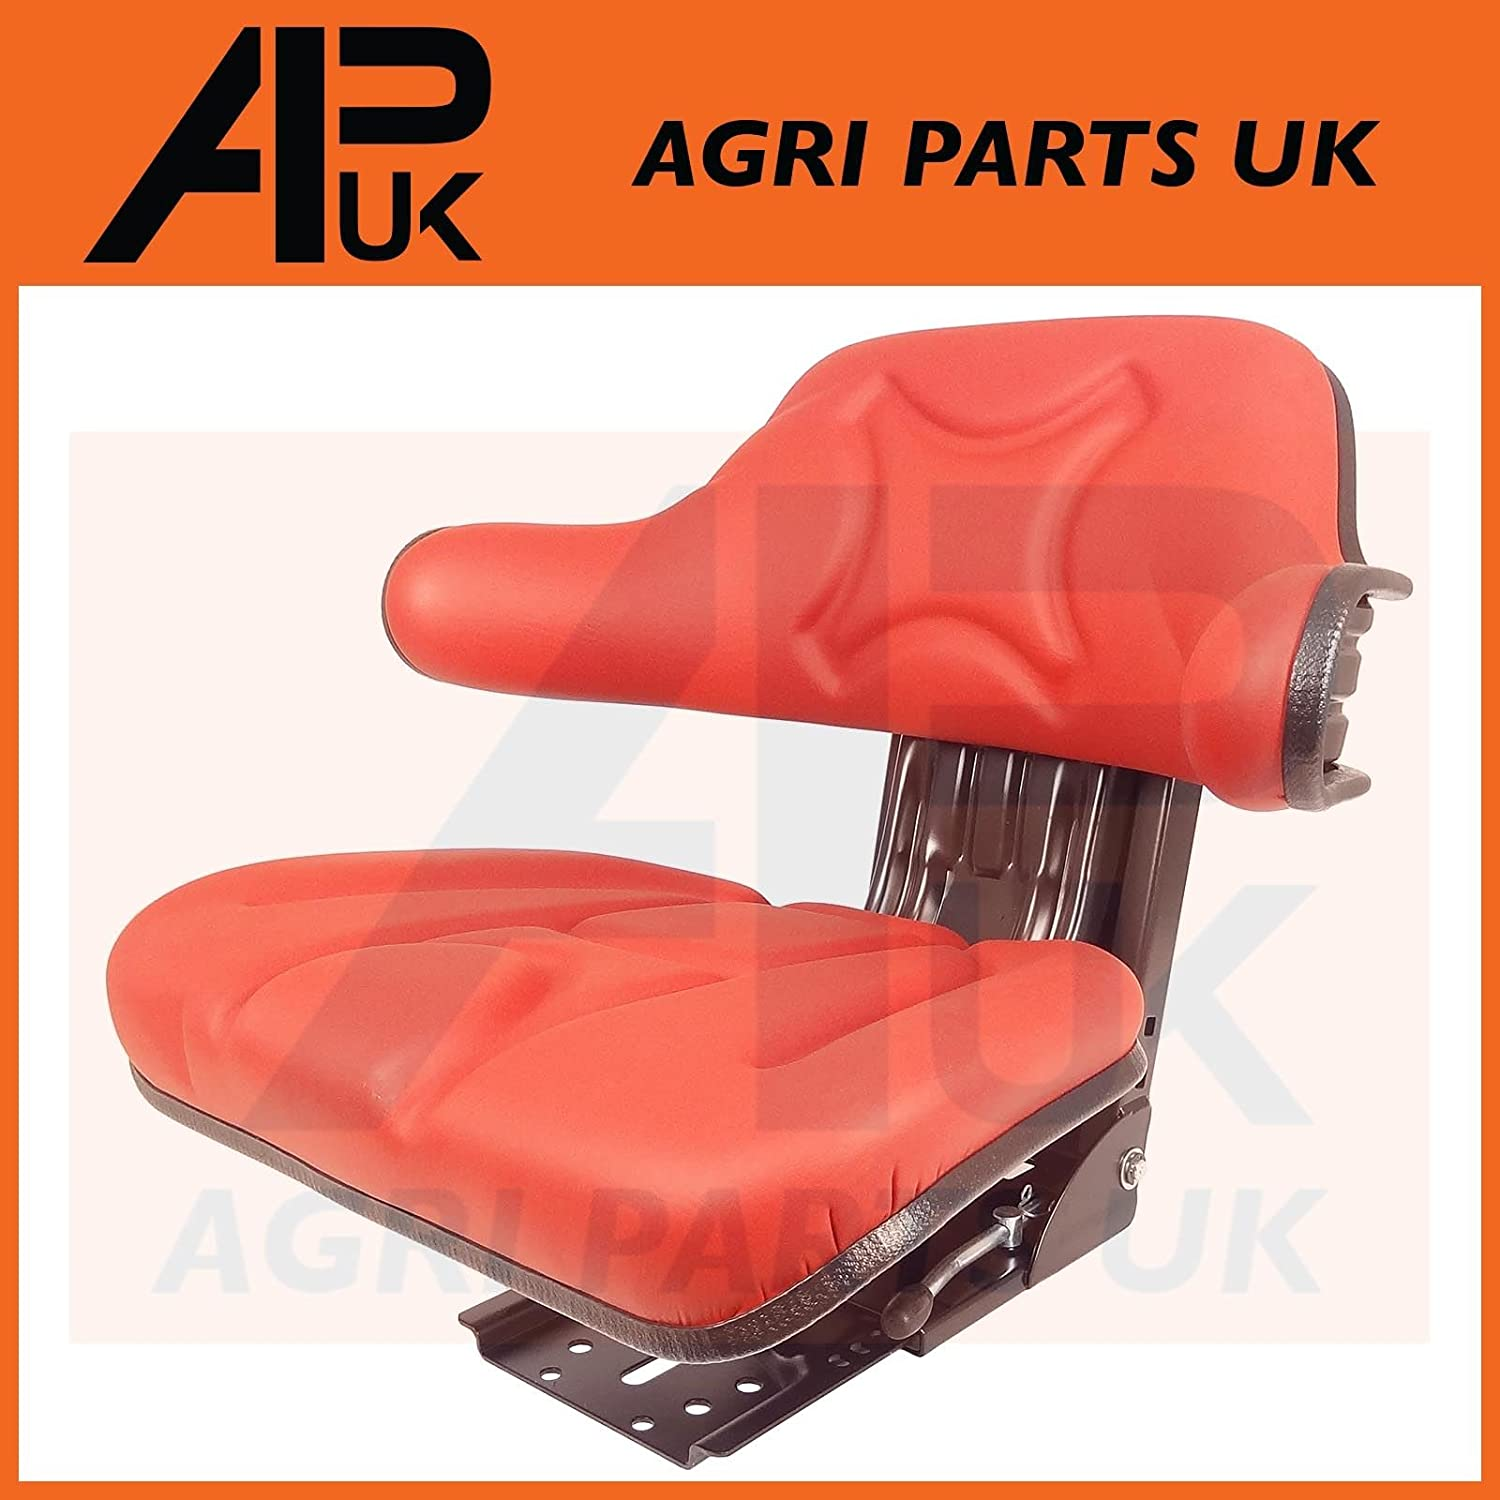 APUK QUALITY UNIVERSAL ADJUSTABLE SUSPENSION SEAT WITH ARM REST TRACTOR DUMPER FORKLIFT RIDE ON MOWER DIGGER RED WATERPROOF Agri Parts UK Ltd